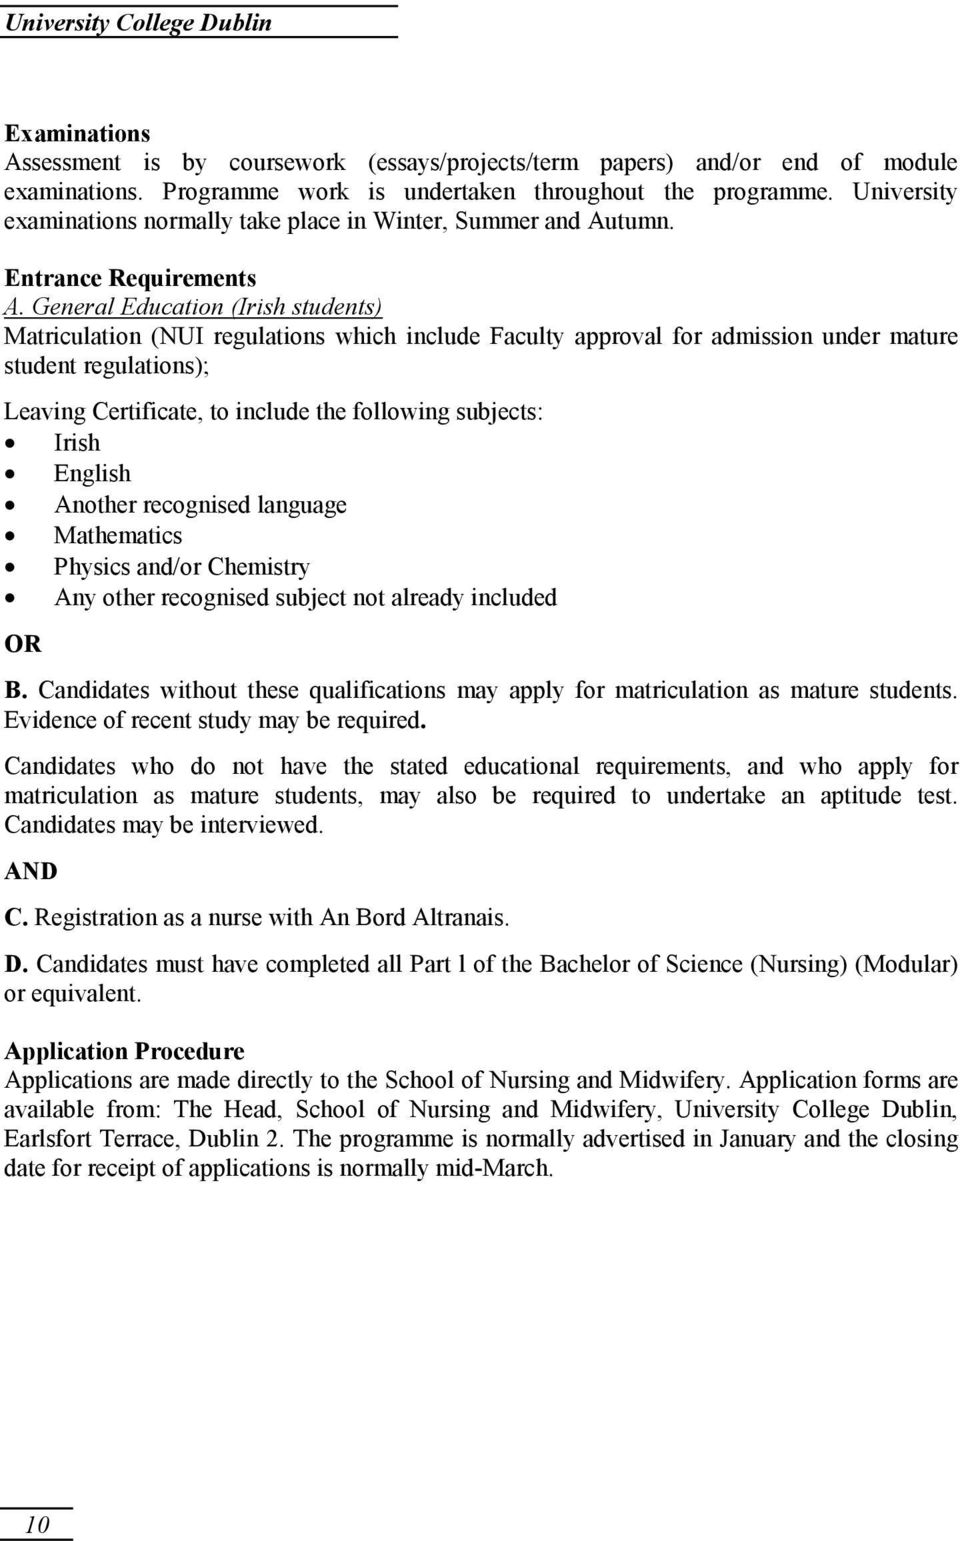 an bord altranais nursing registration lecturer in nursing school an bord altranais nursing registration nursing and midwifery registration diploma in general